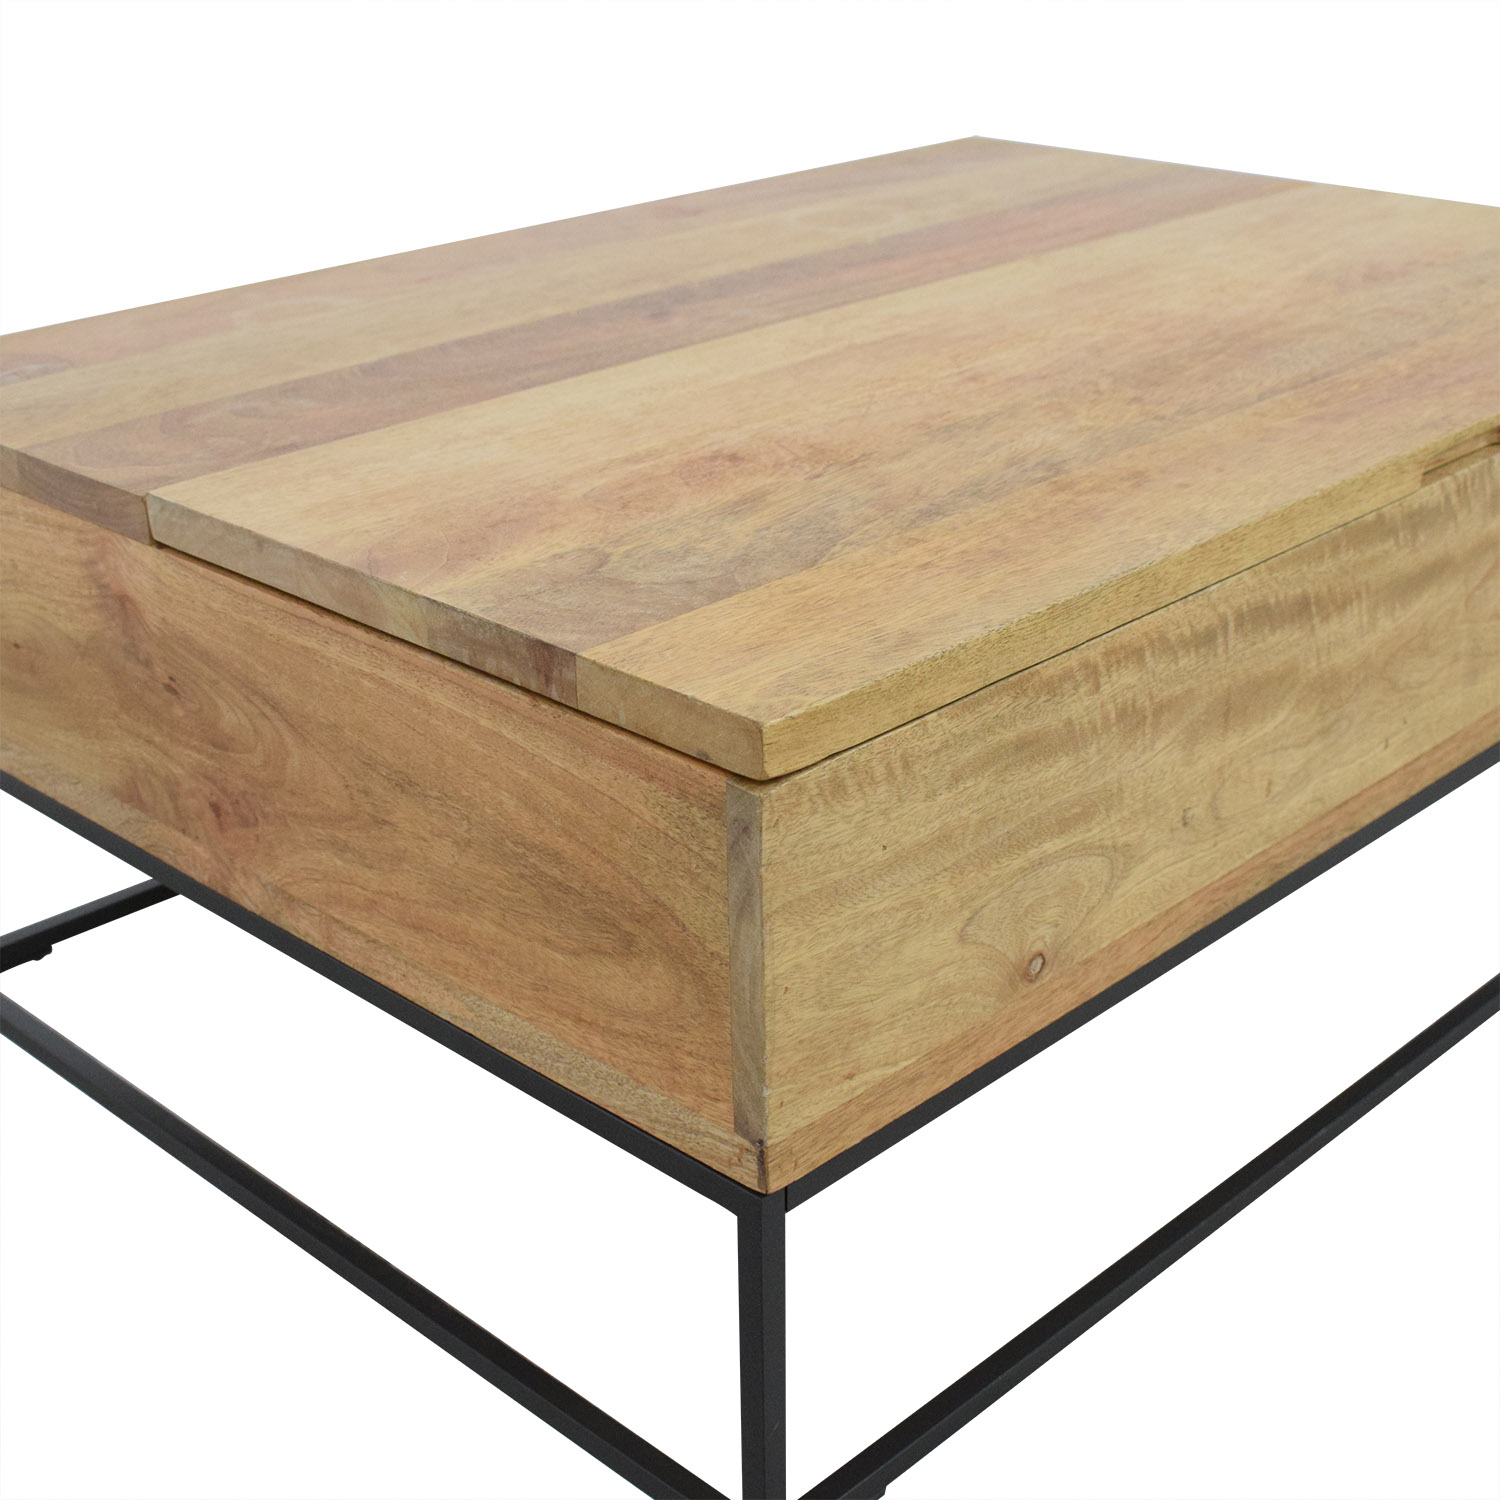 West Elm West Elm Industrial Storage Coffee Table coupon